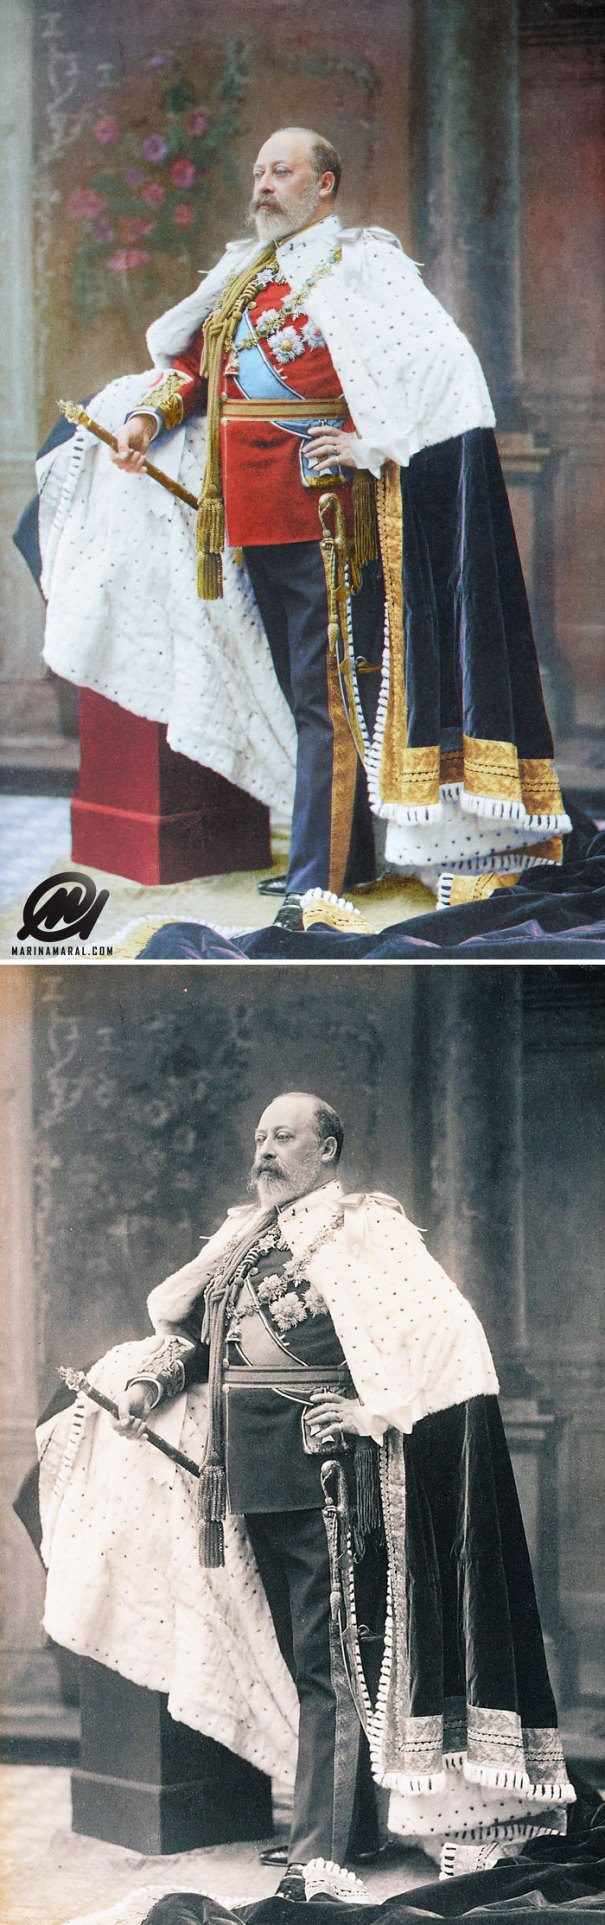 5b6d3b84022fc-colorized-historic-photos-marina-amaral-76-5b6c0ebed79fd__700 This Artist Colorizes Old Black & White Photos, And They Will Change The Way People Imagine History Photography Random